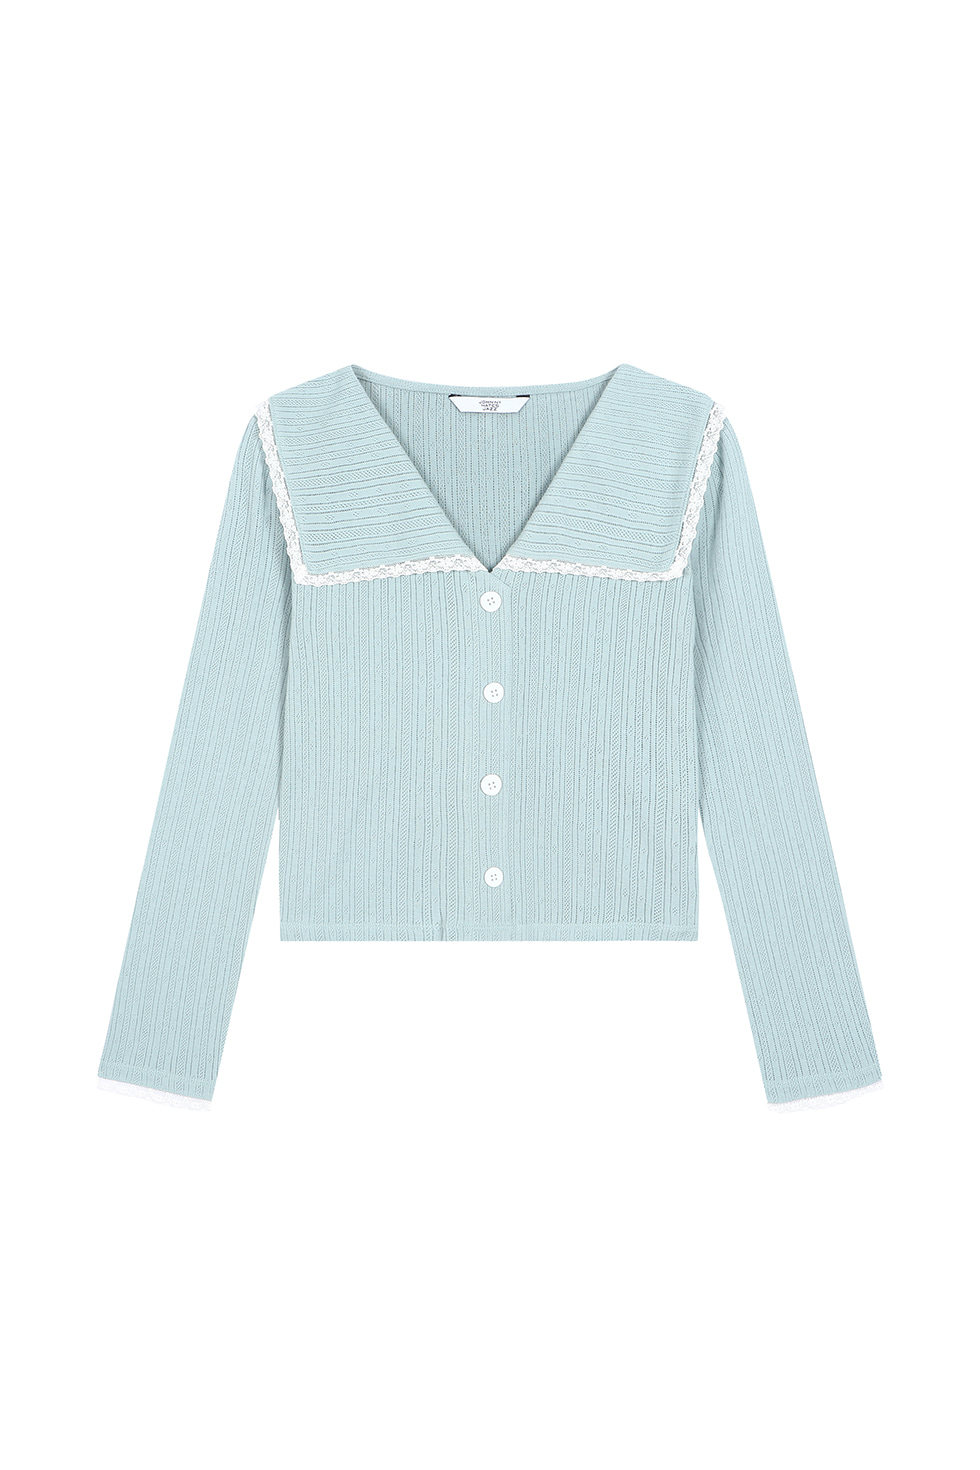 [4월 20일 예약배송]SAILOR COLLAR LONG SLEEVES - MINT